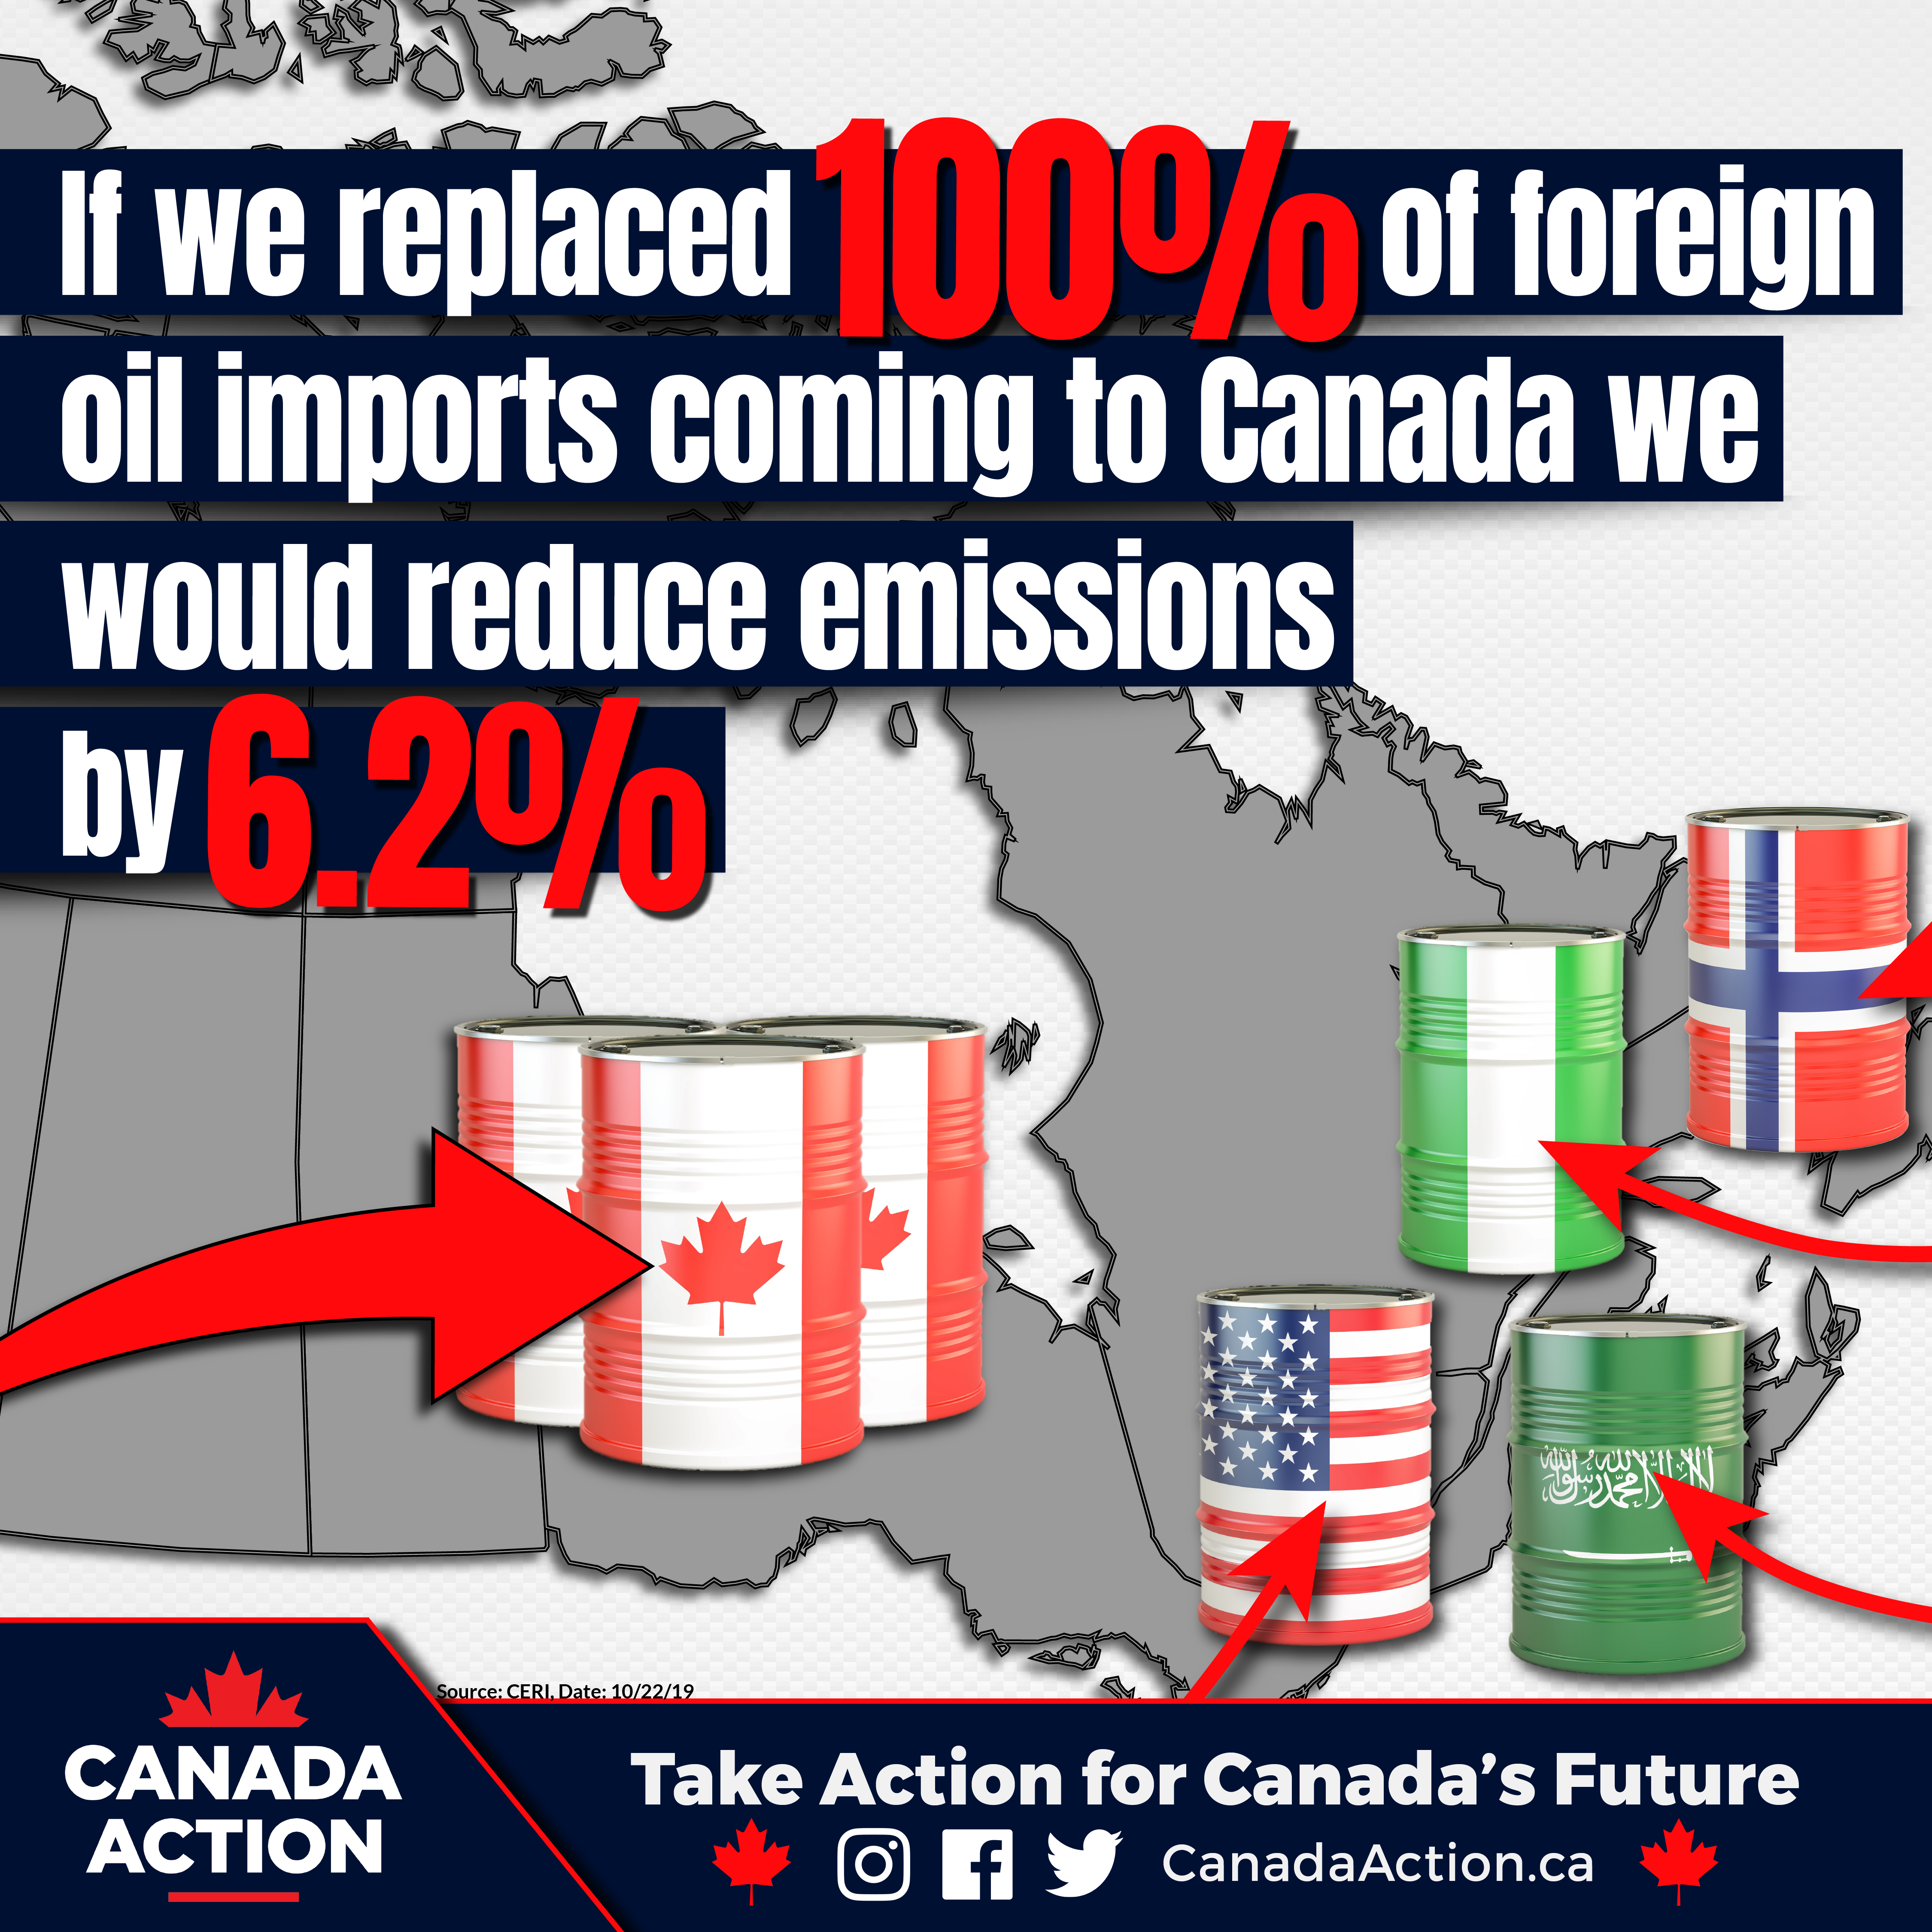 CERI Study 167 - Replacing Foreign Oil Imported into Canada Would Reduce Emissions